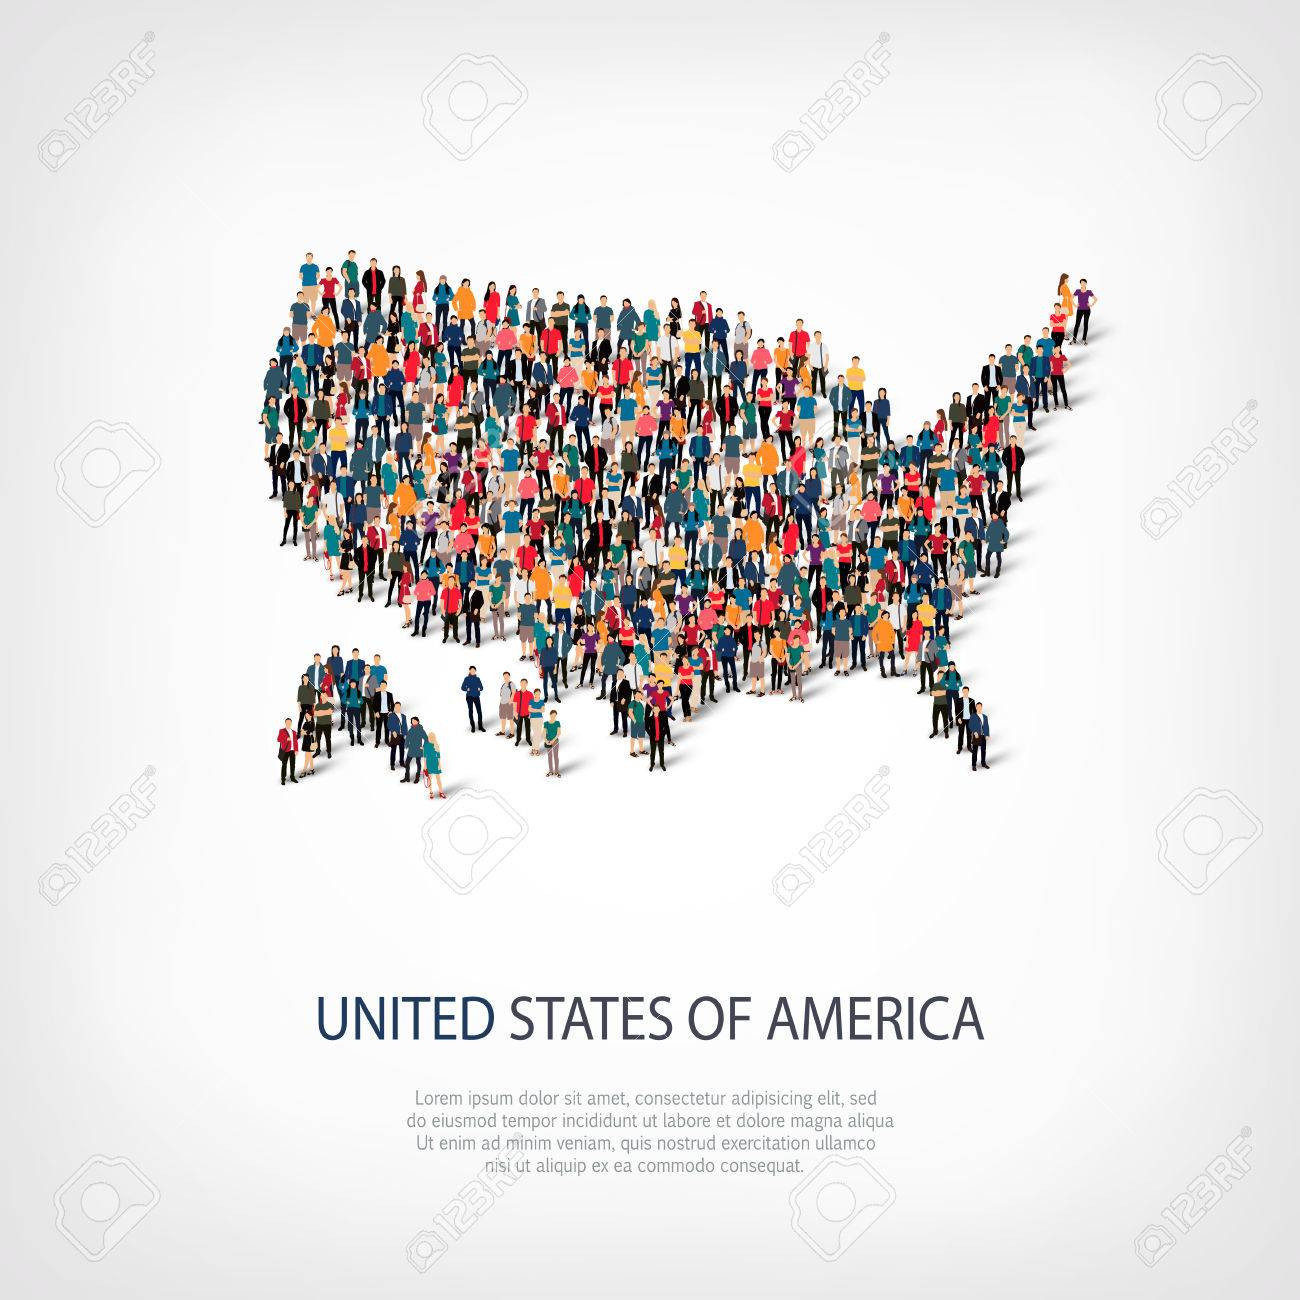 Stock Illustration on east coast map, great lakes map, nevada map, the us map, florida map, caribbean map, the world map, mississippi map, blank map, us state map, 13 colonies map, arkansas map, africa map, missouri map, europe map, canada map, mexico map, full size us map, tennessee map, texas map,